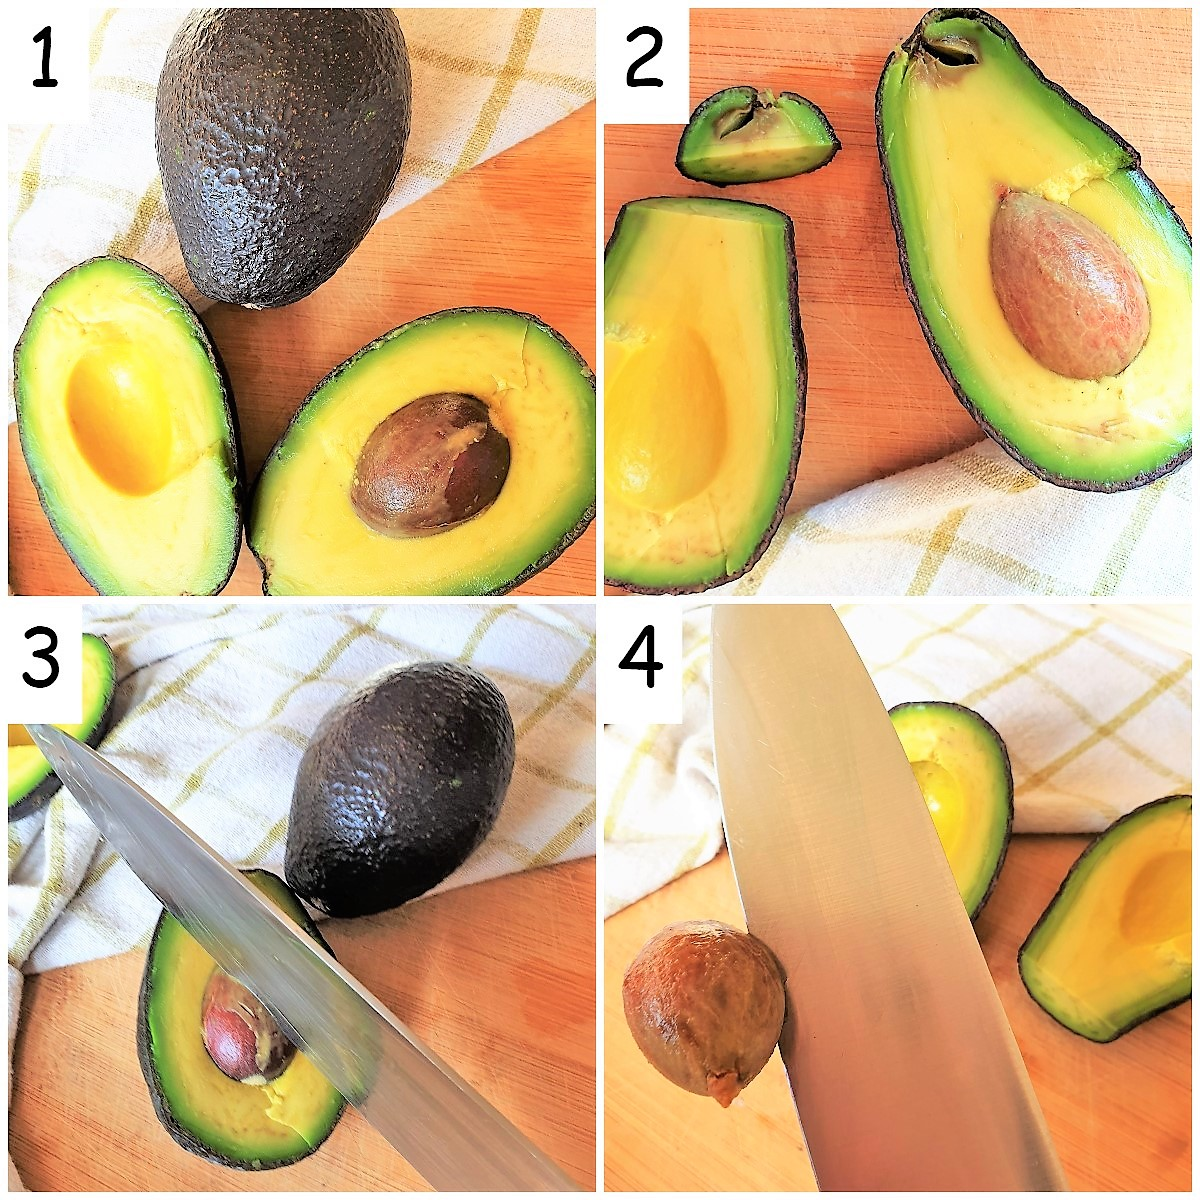 Steps for cutting an avocado and removing the stone.